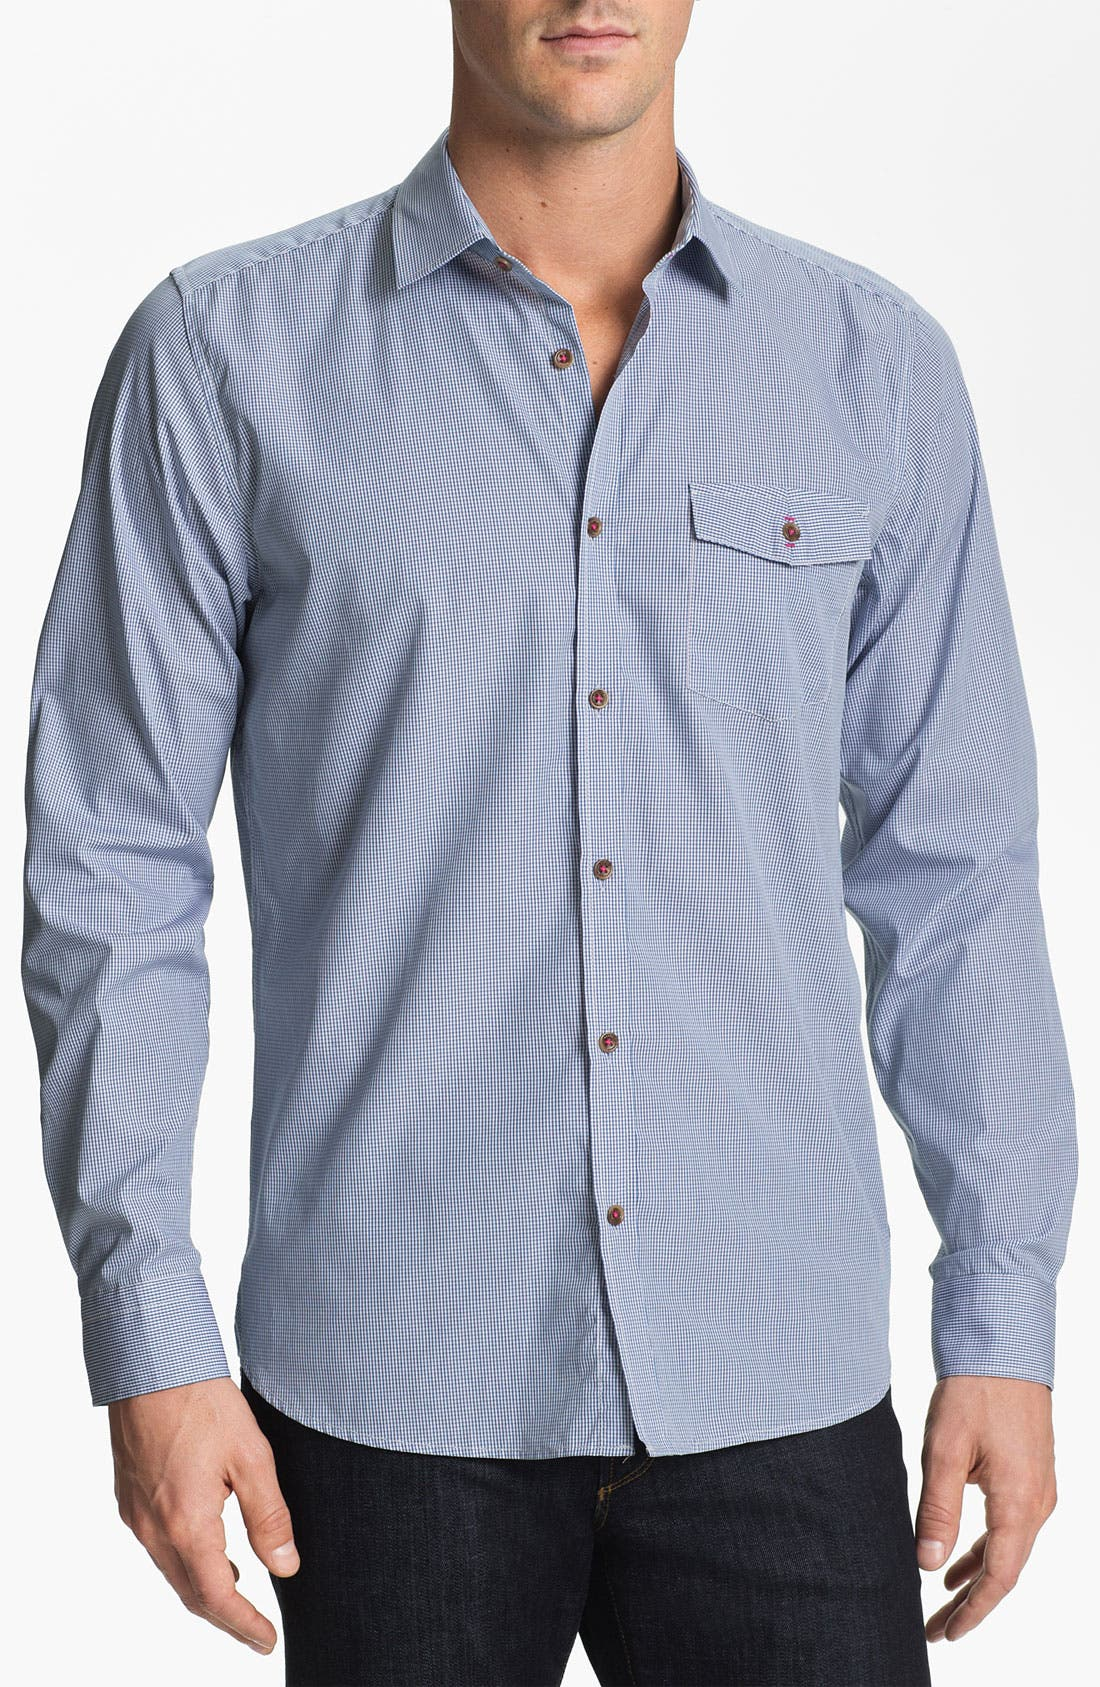 Alternate Image 1 Selected - Ted Baker London 'Blachie' Sport Shirt